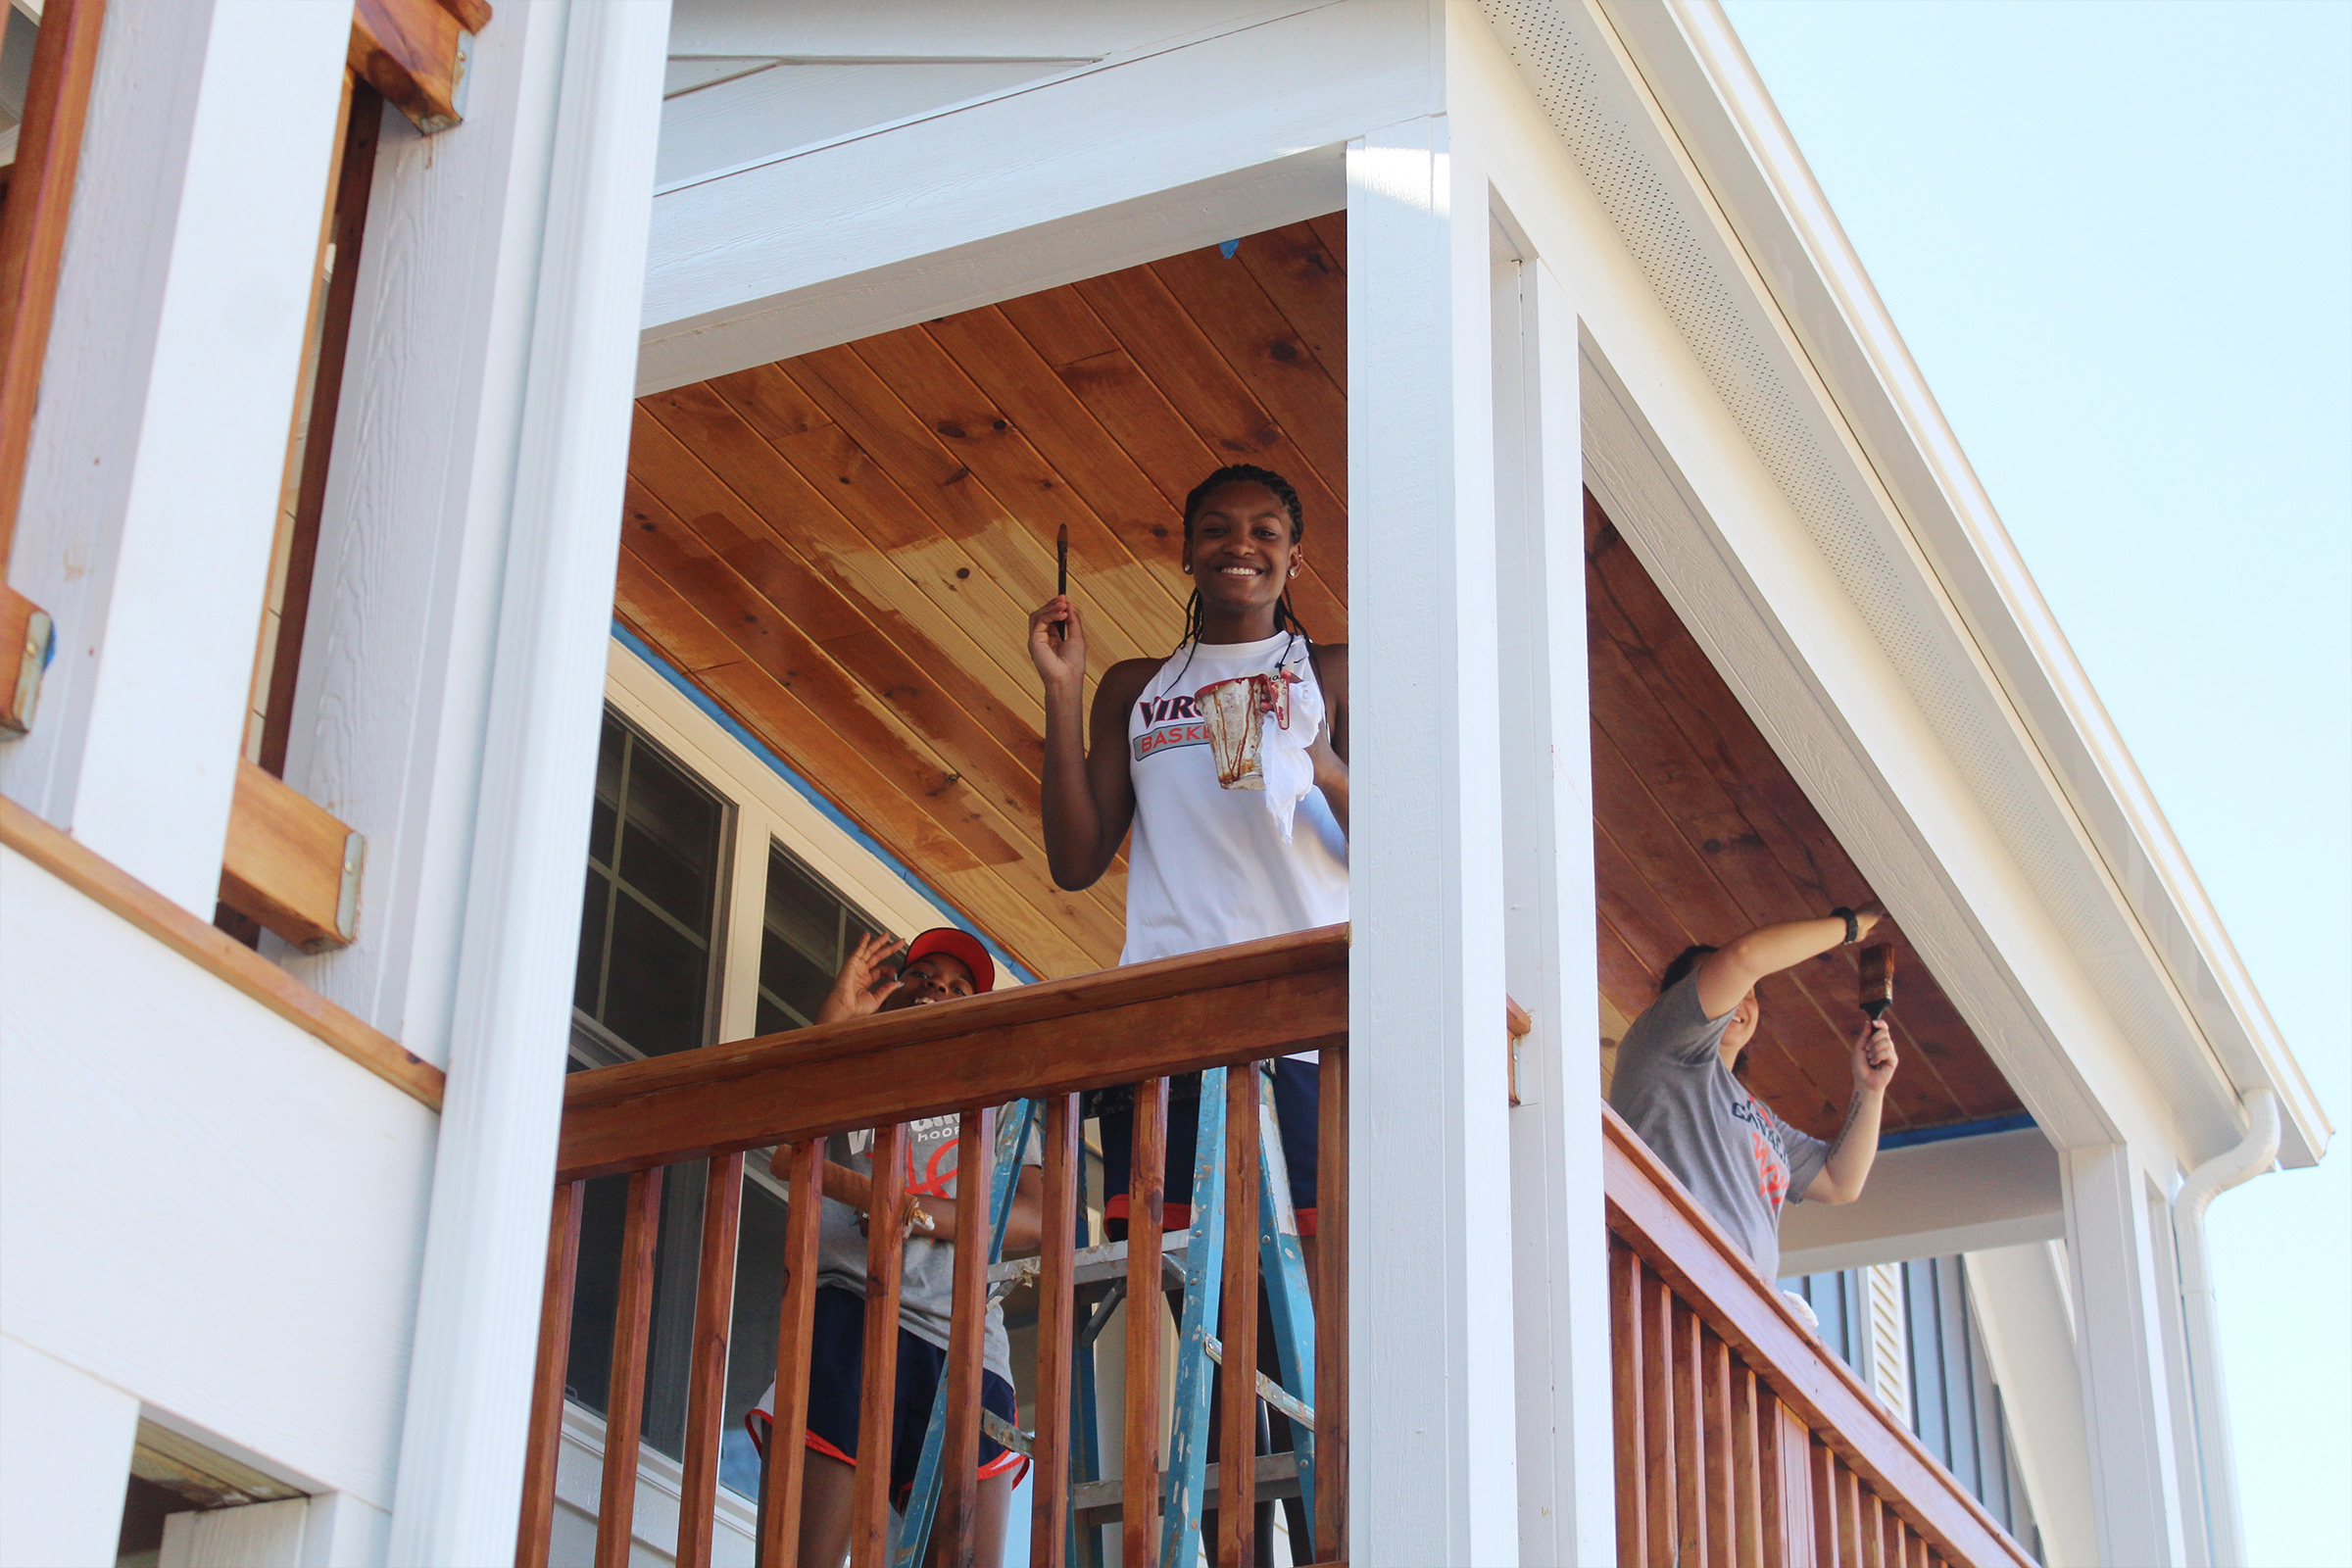 2018 graduate and former basketball player Aliyah Huland El helped out at a Habitat for Humanity site last year.